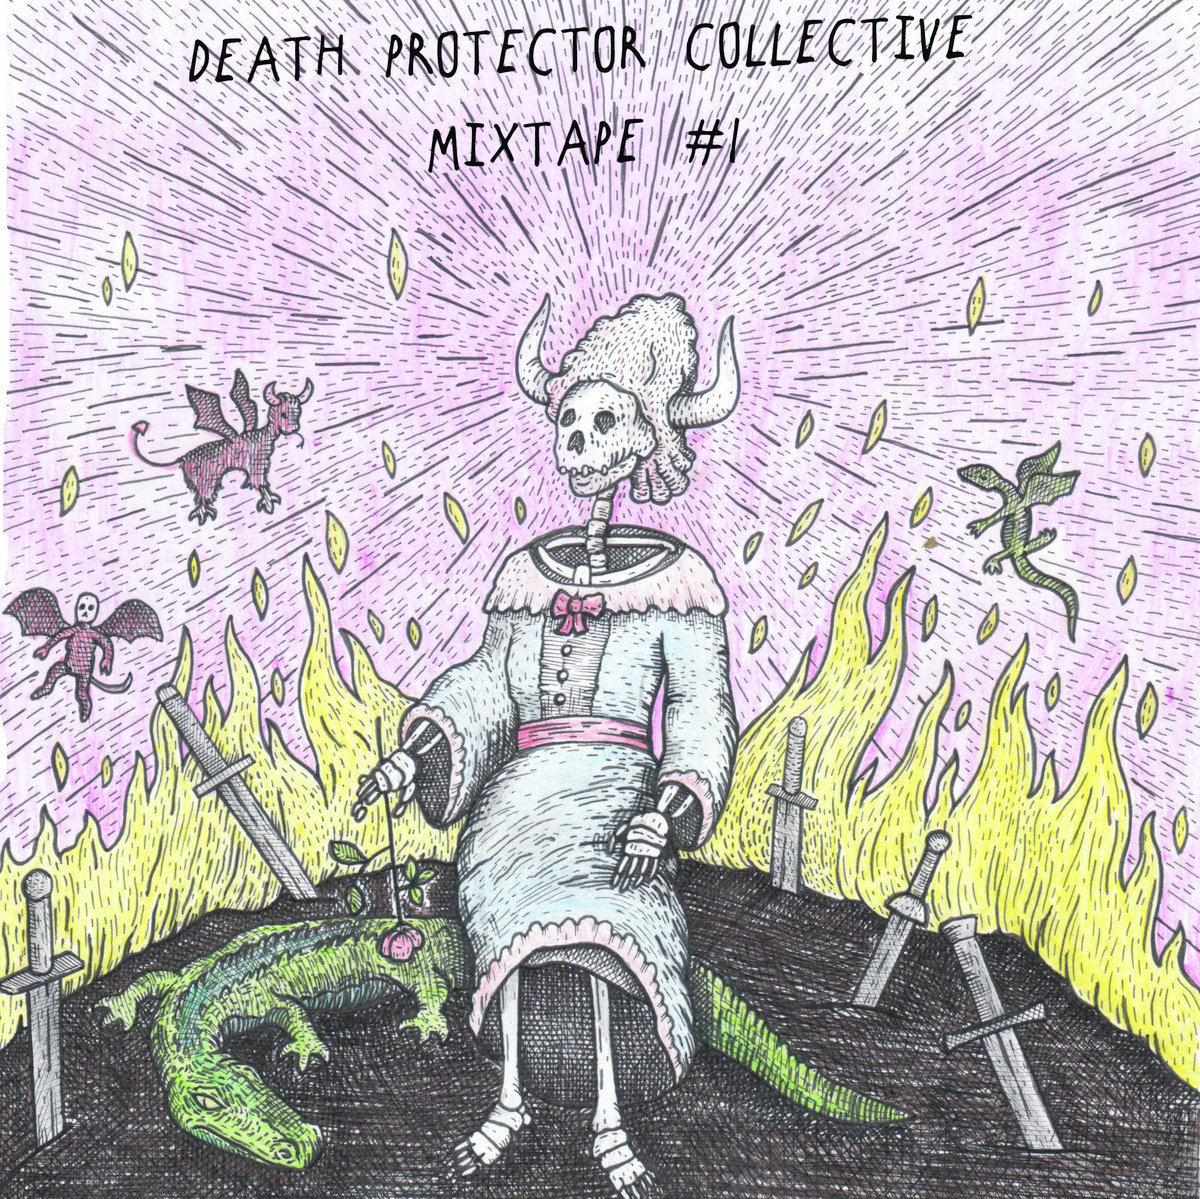 big miss steak death protector collective